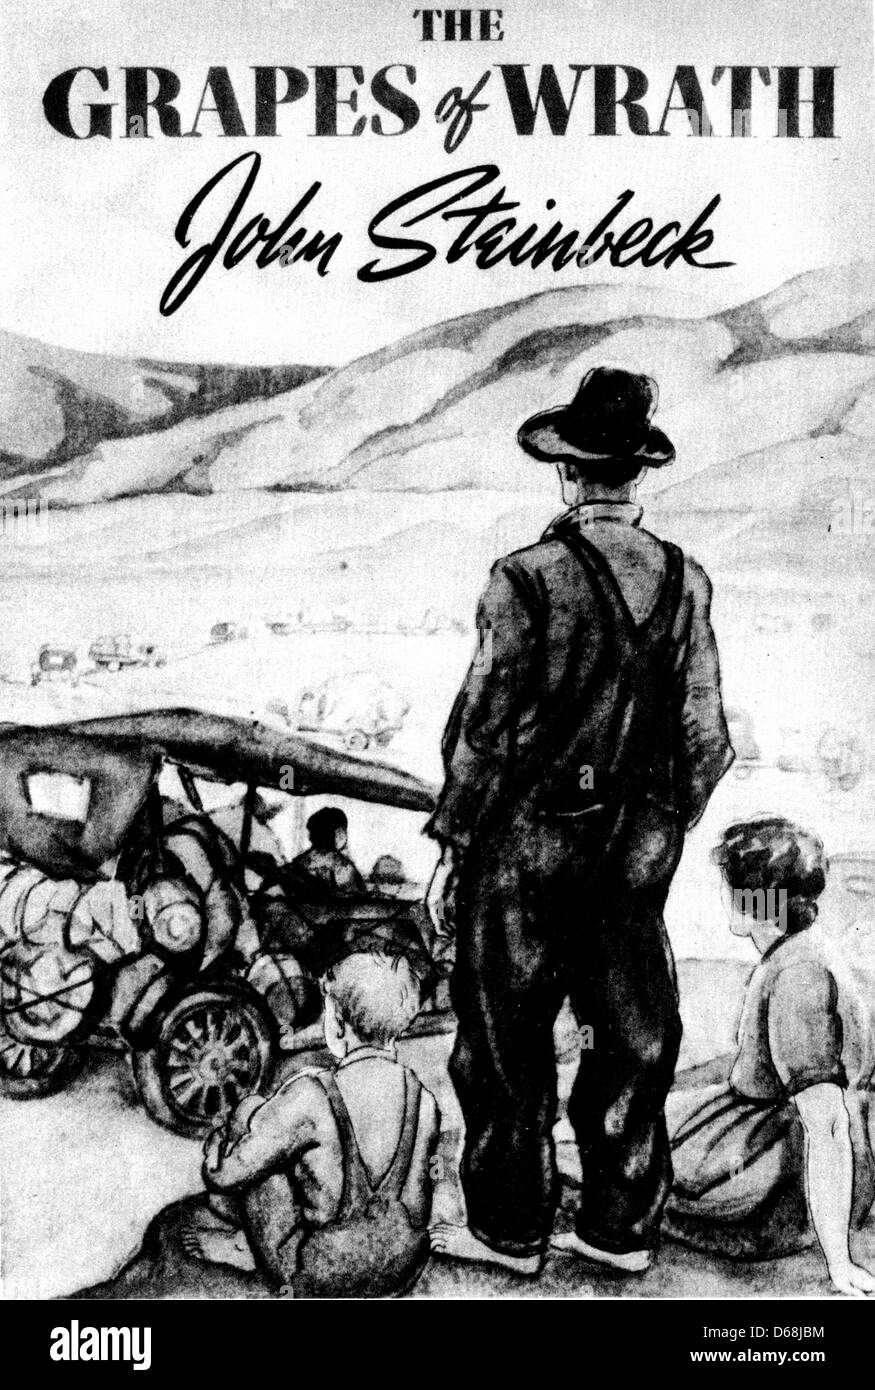 in the book grapes of wrath Download the grapes of wrath study guide subscribe now to download this  study guide, along with more than 30,000 other titles get help with any book.